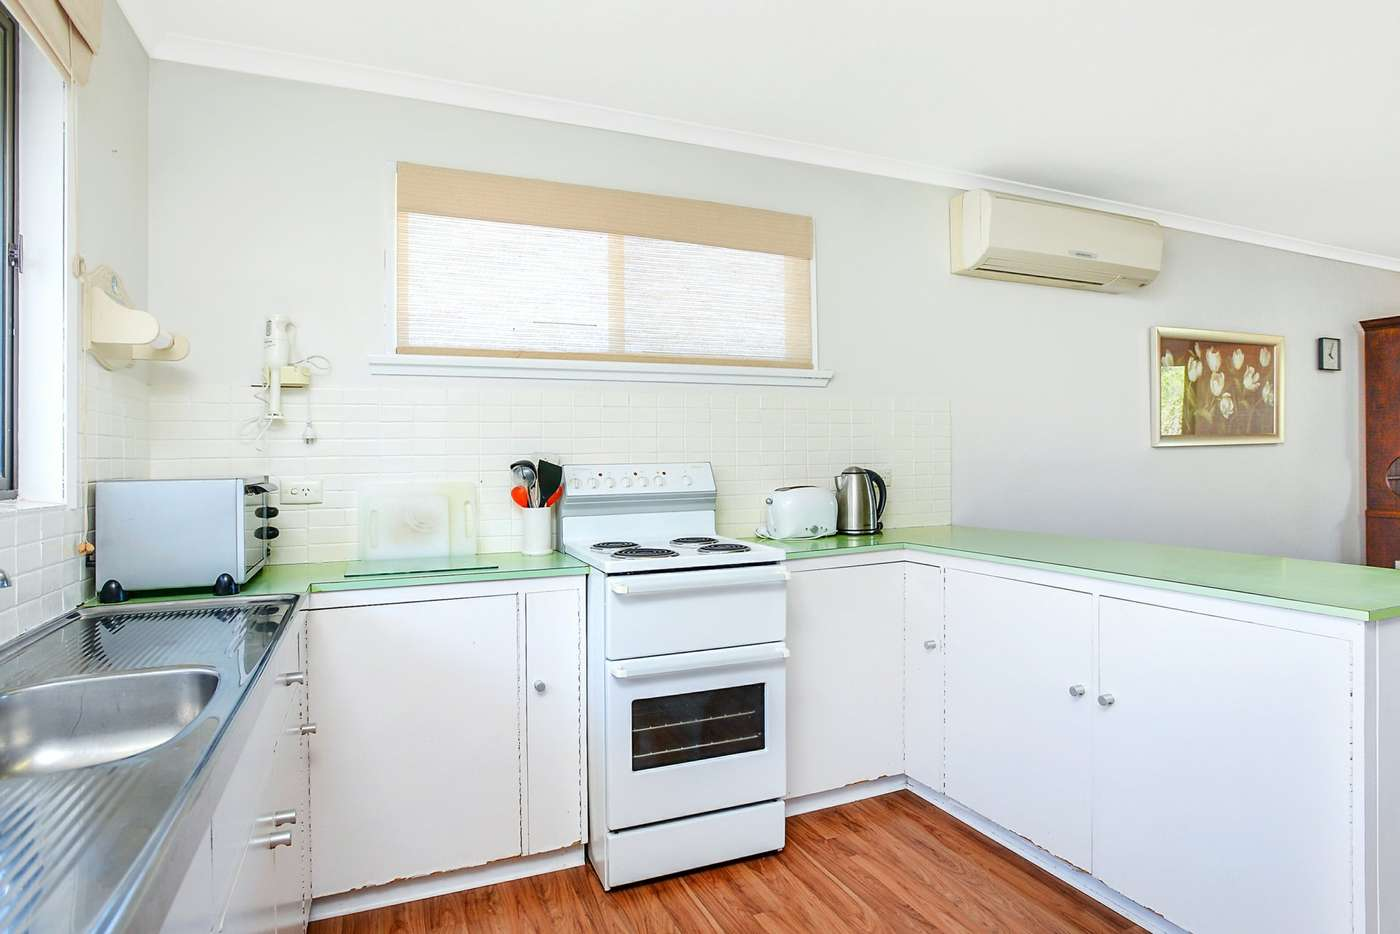 Seventh view of Homely house listing, 1 Henry Street, Encounter Bay SA 5211